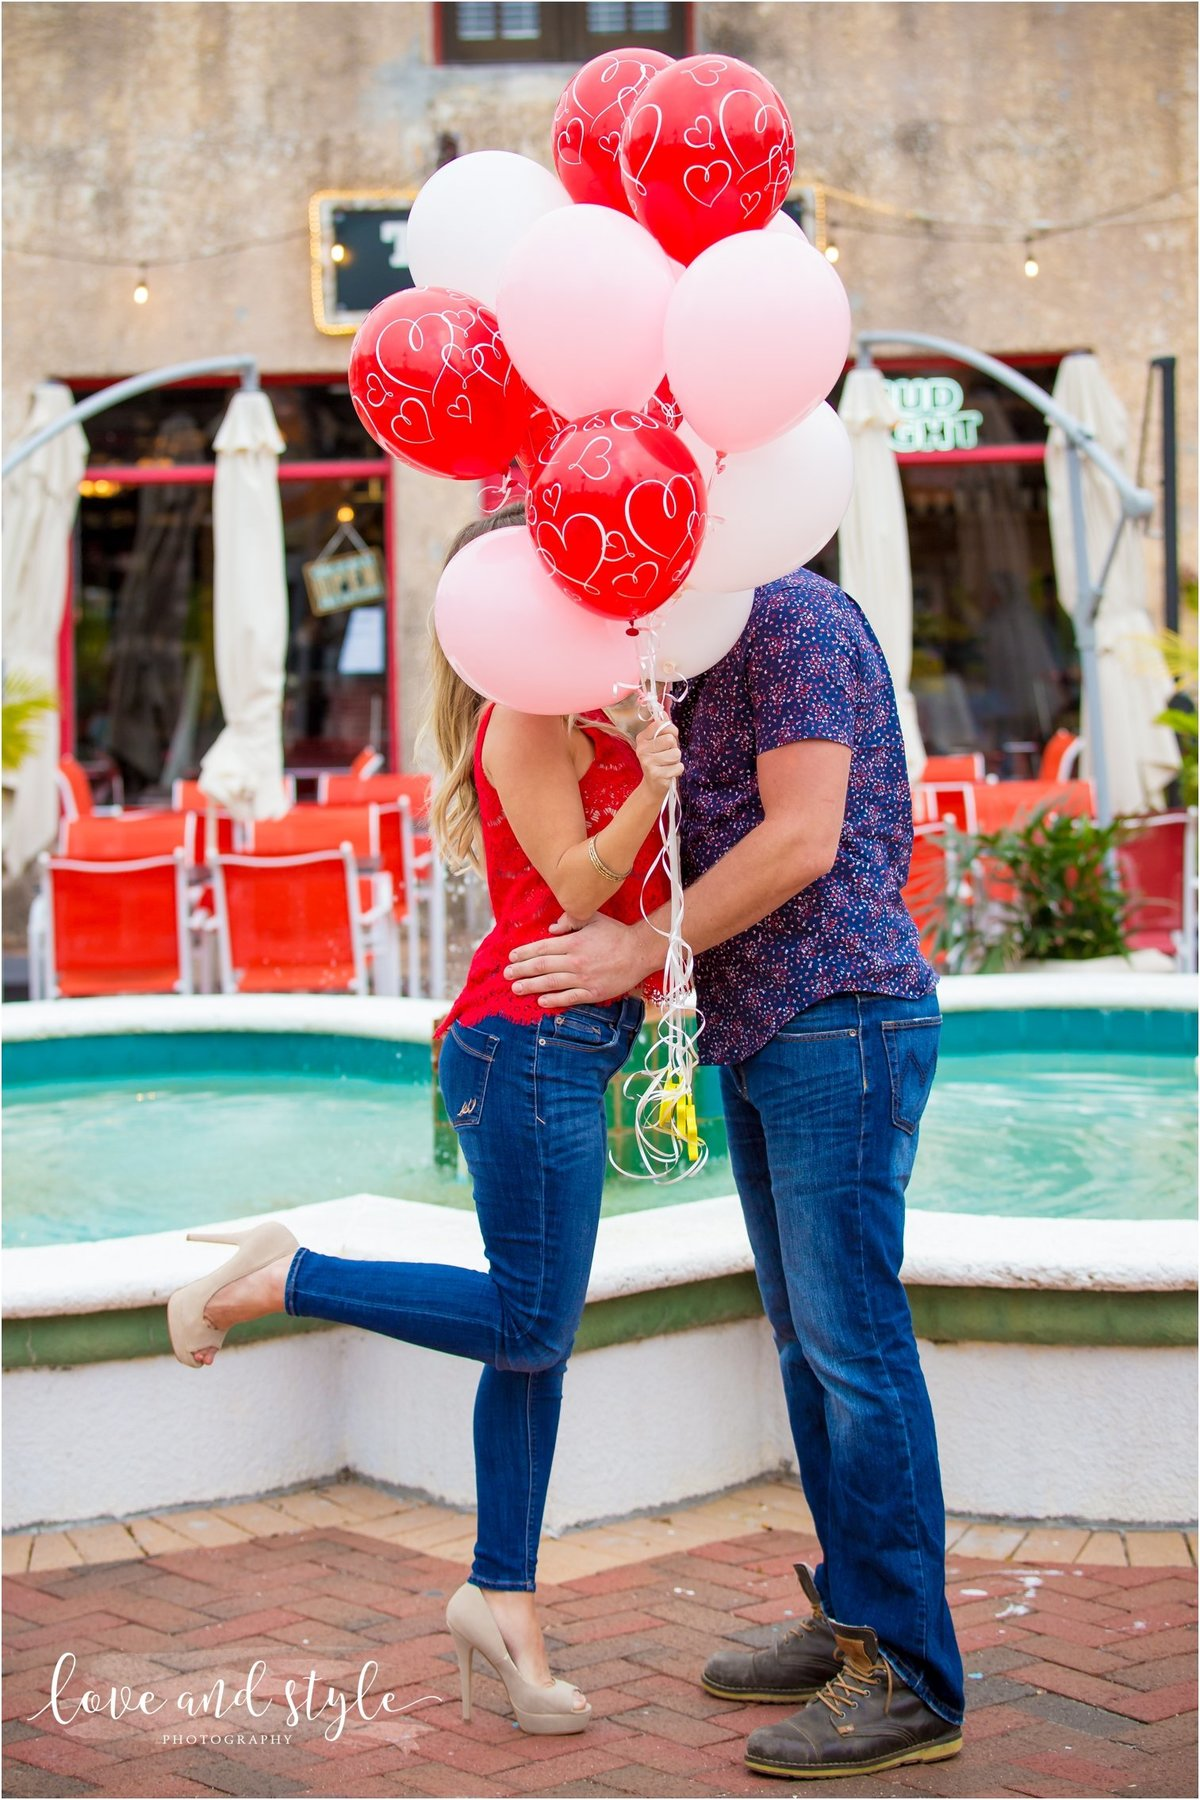 Sarasota Engagement Photography of couple kissing  behind red and pick balloons downtown